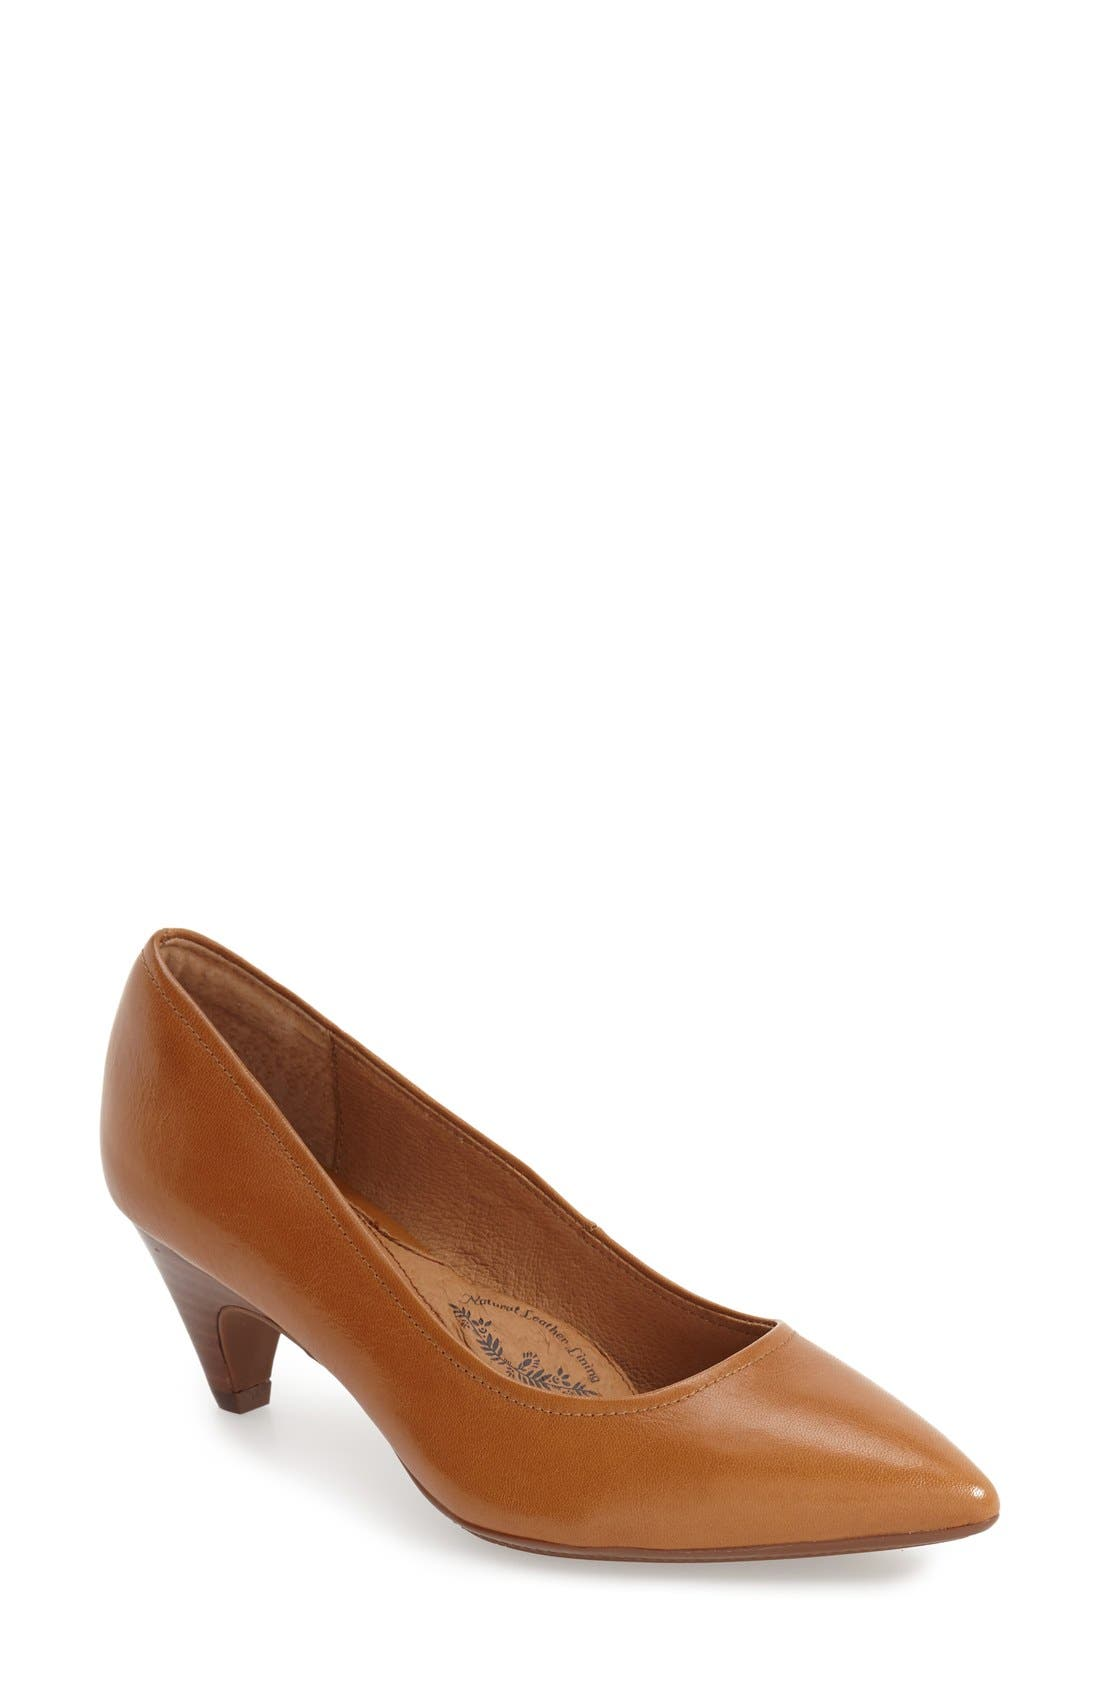 Women's Brown Kitten Heel Pumps | Nordstrom